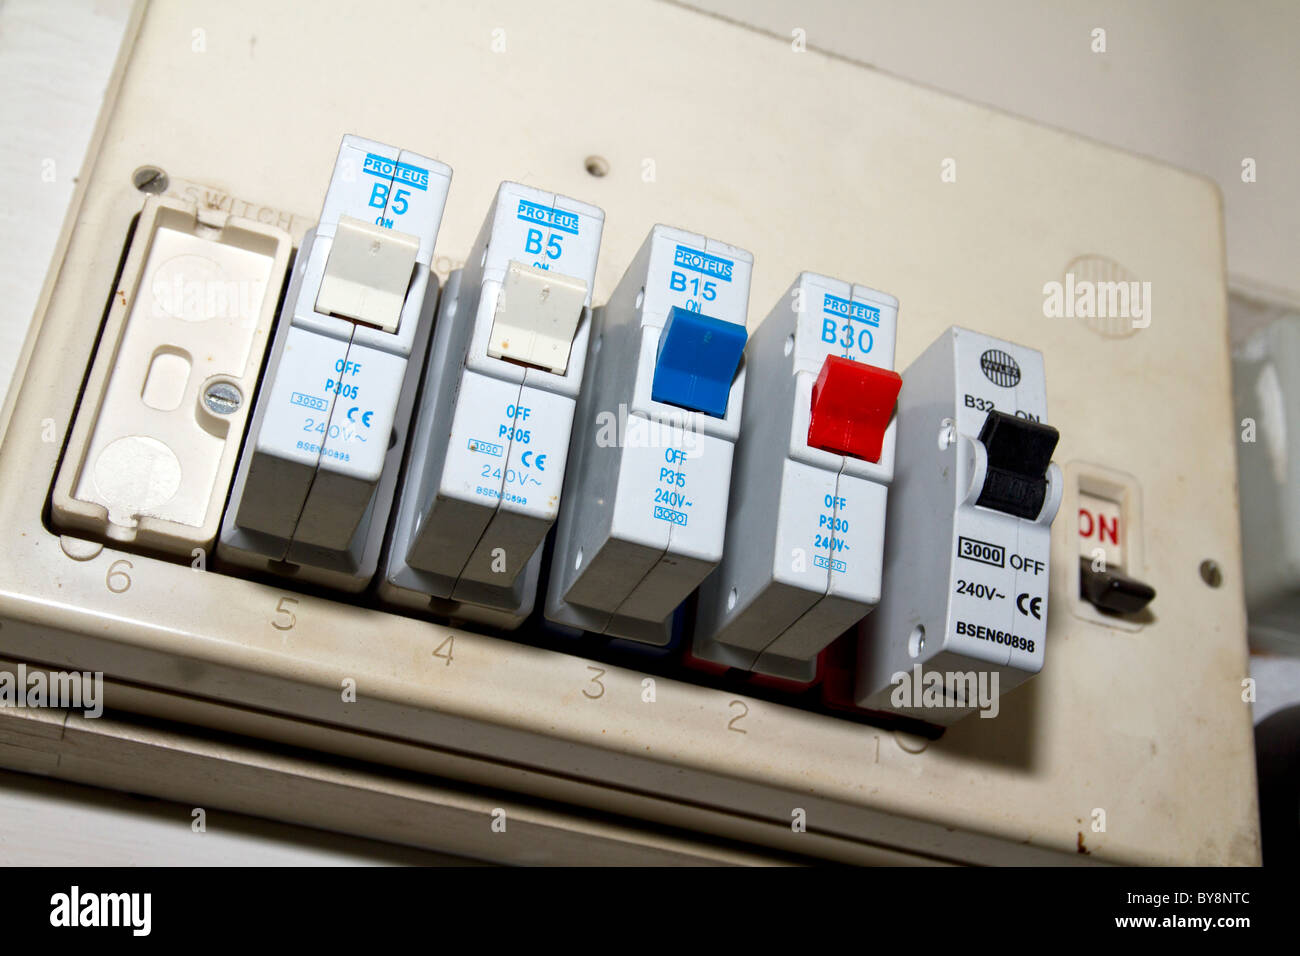 uk old electric fuse box in a london house stock photo 33998844 rh alamy com old house fuse box diagram old house fuse box parts